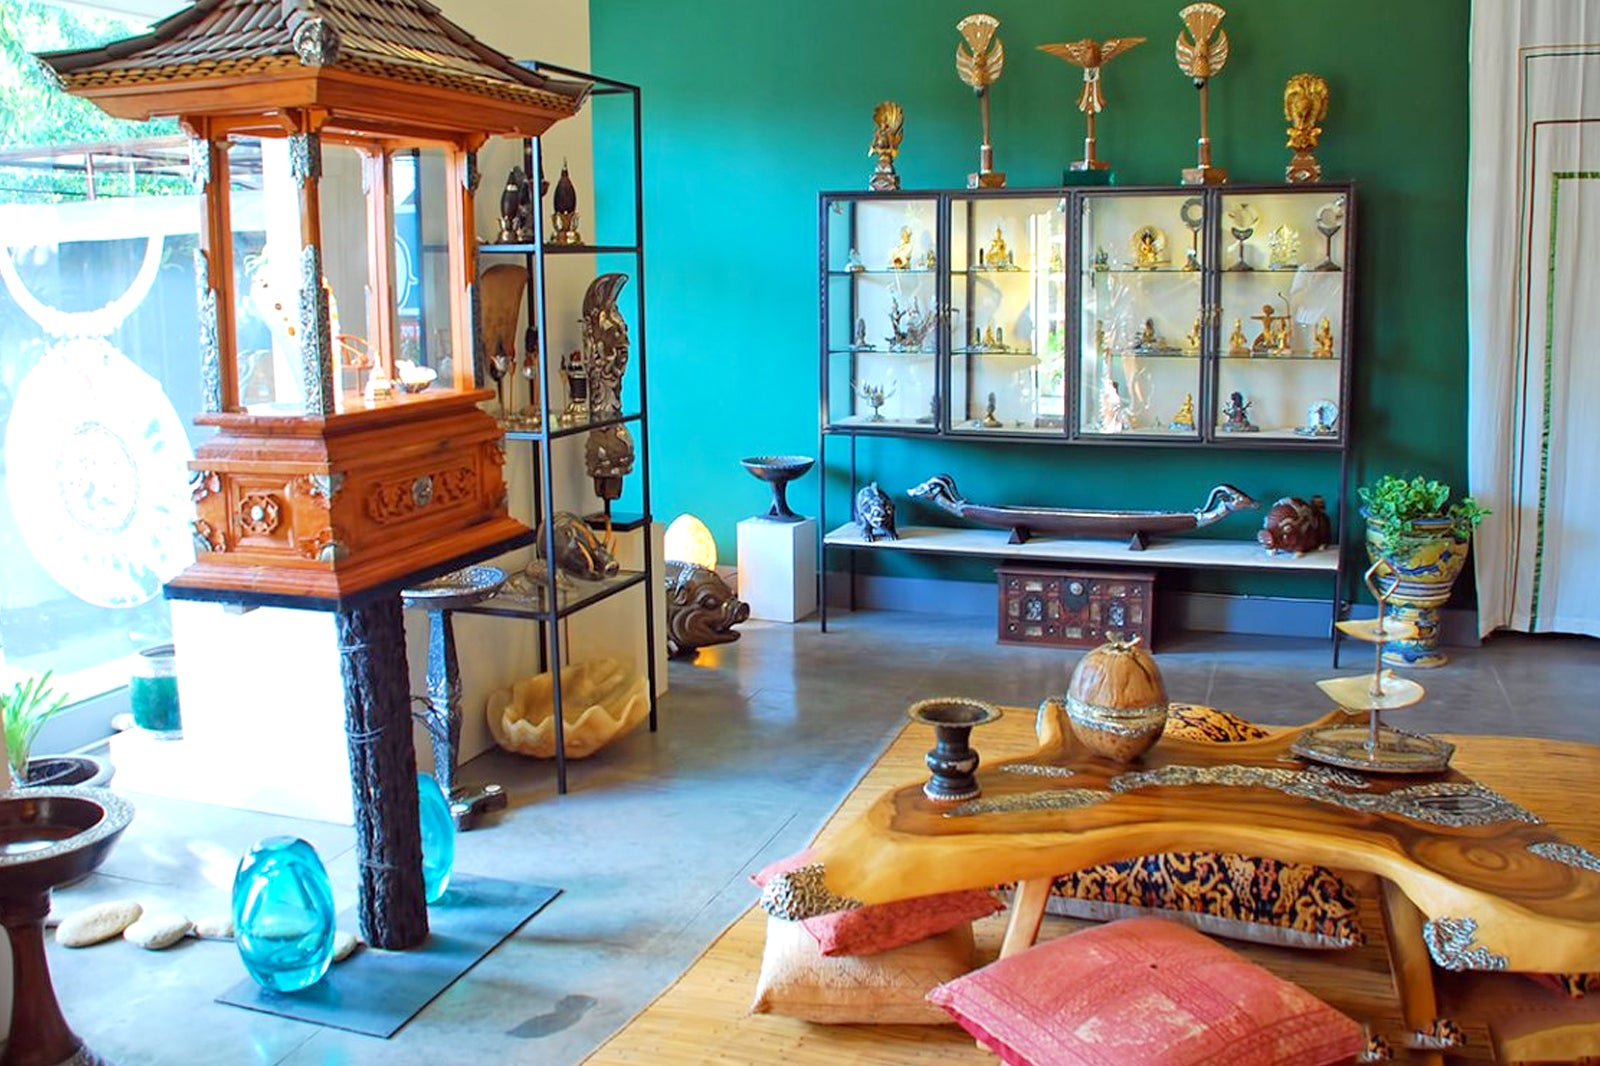 7 Best Homeware And Furniture Shops In Bali Great Bali Furniture And Decor Showrooms